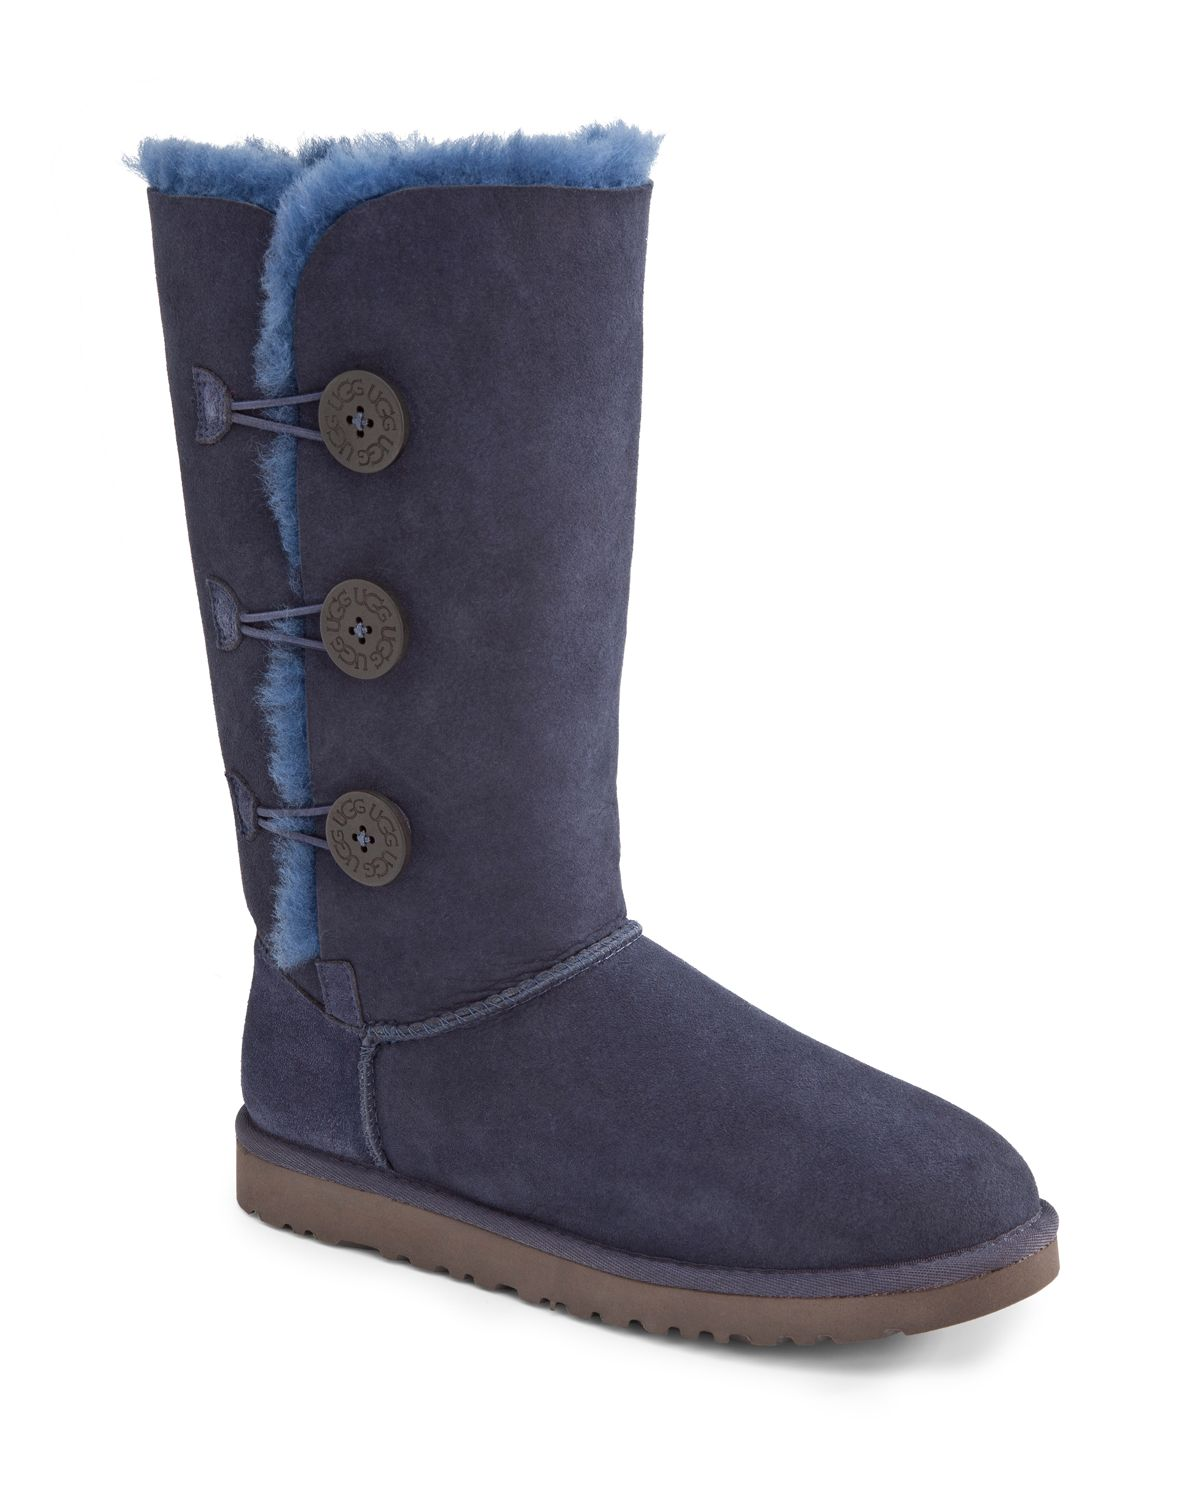 lyst ugg bailey button triplet boots in blue. Black Bedroom Furniture Sets. Home Design Ideas